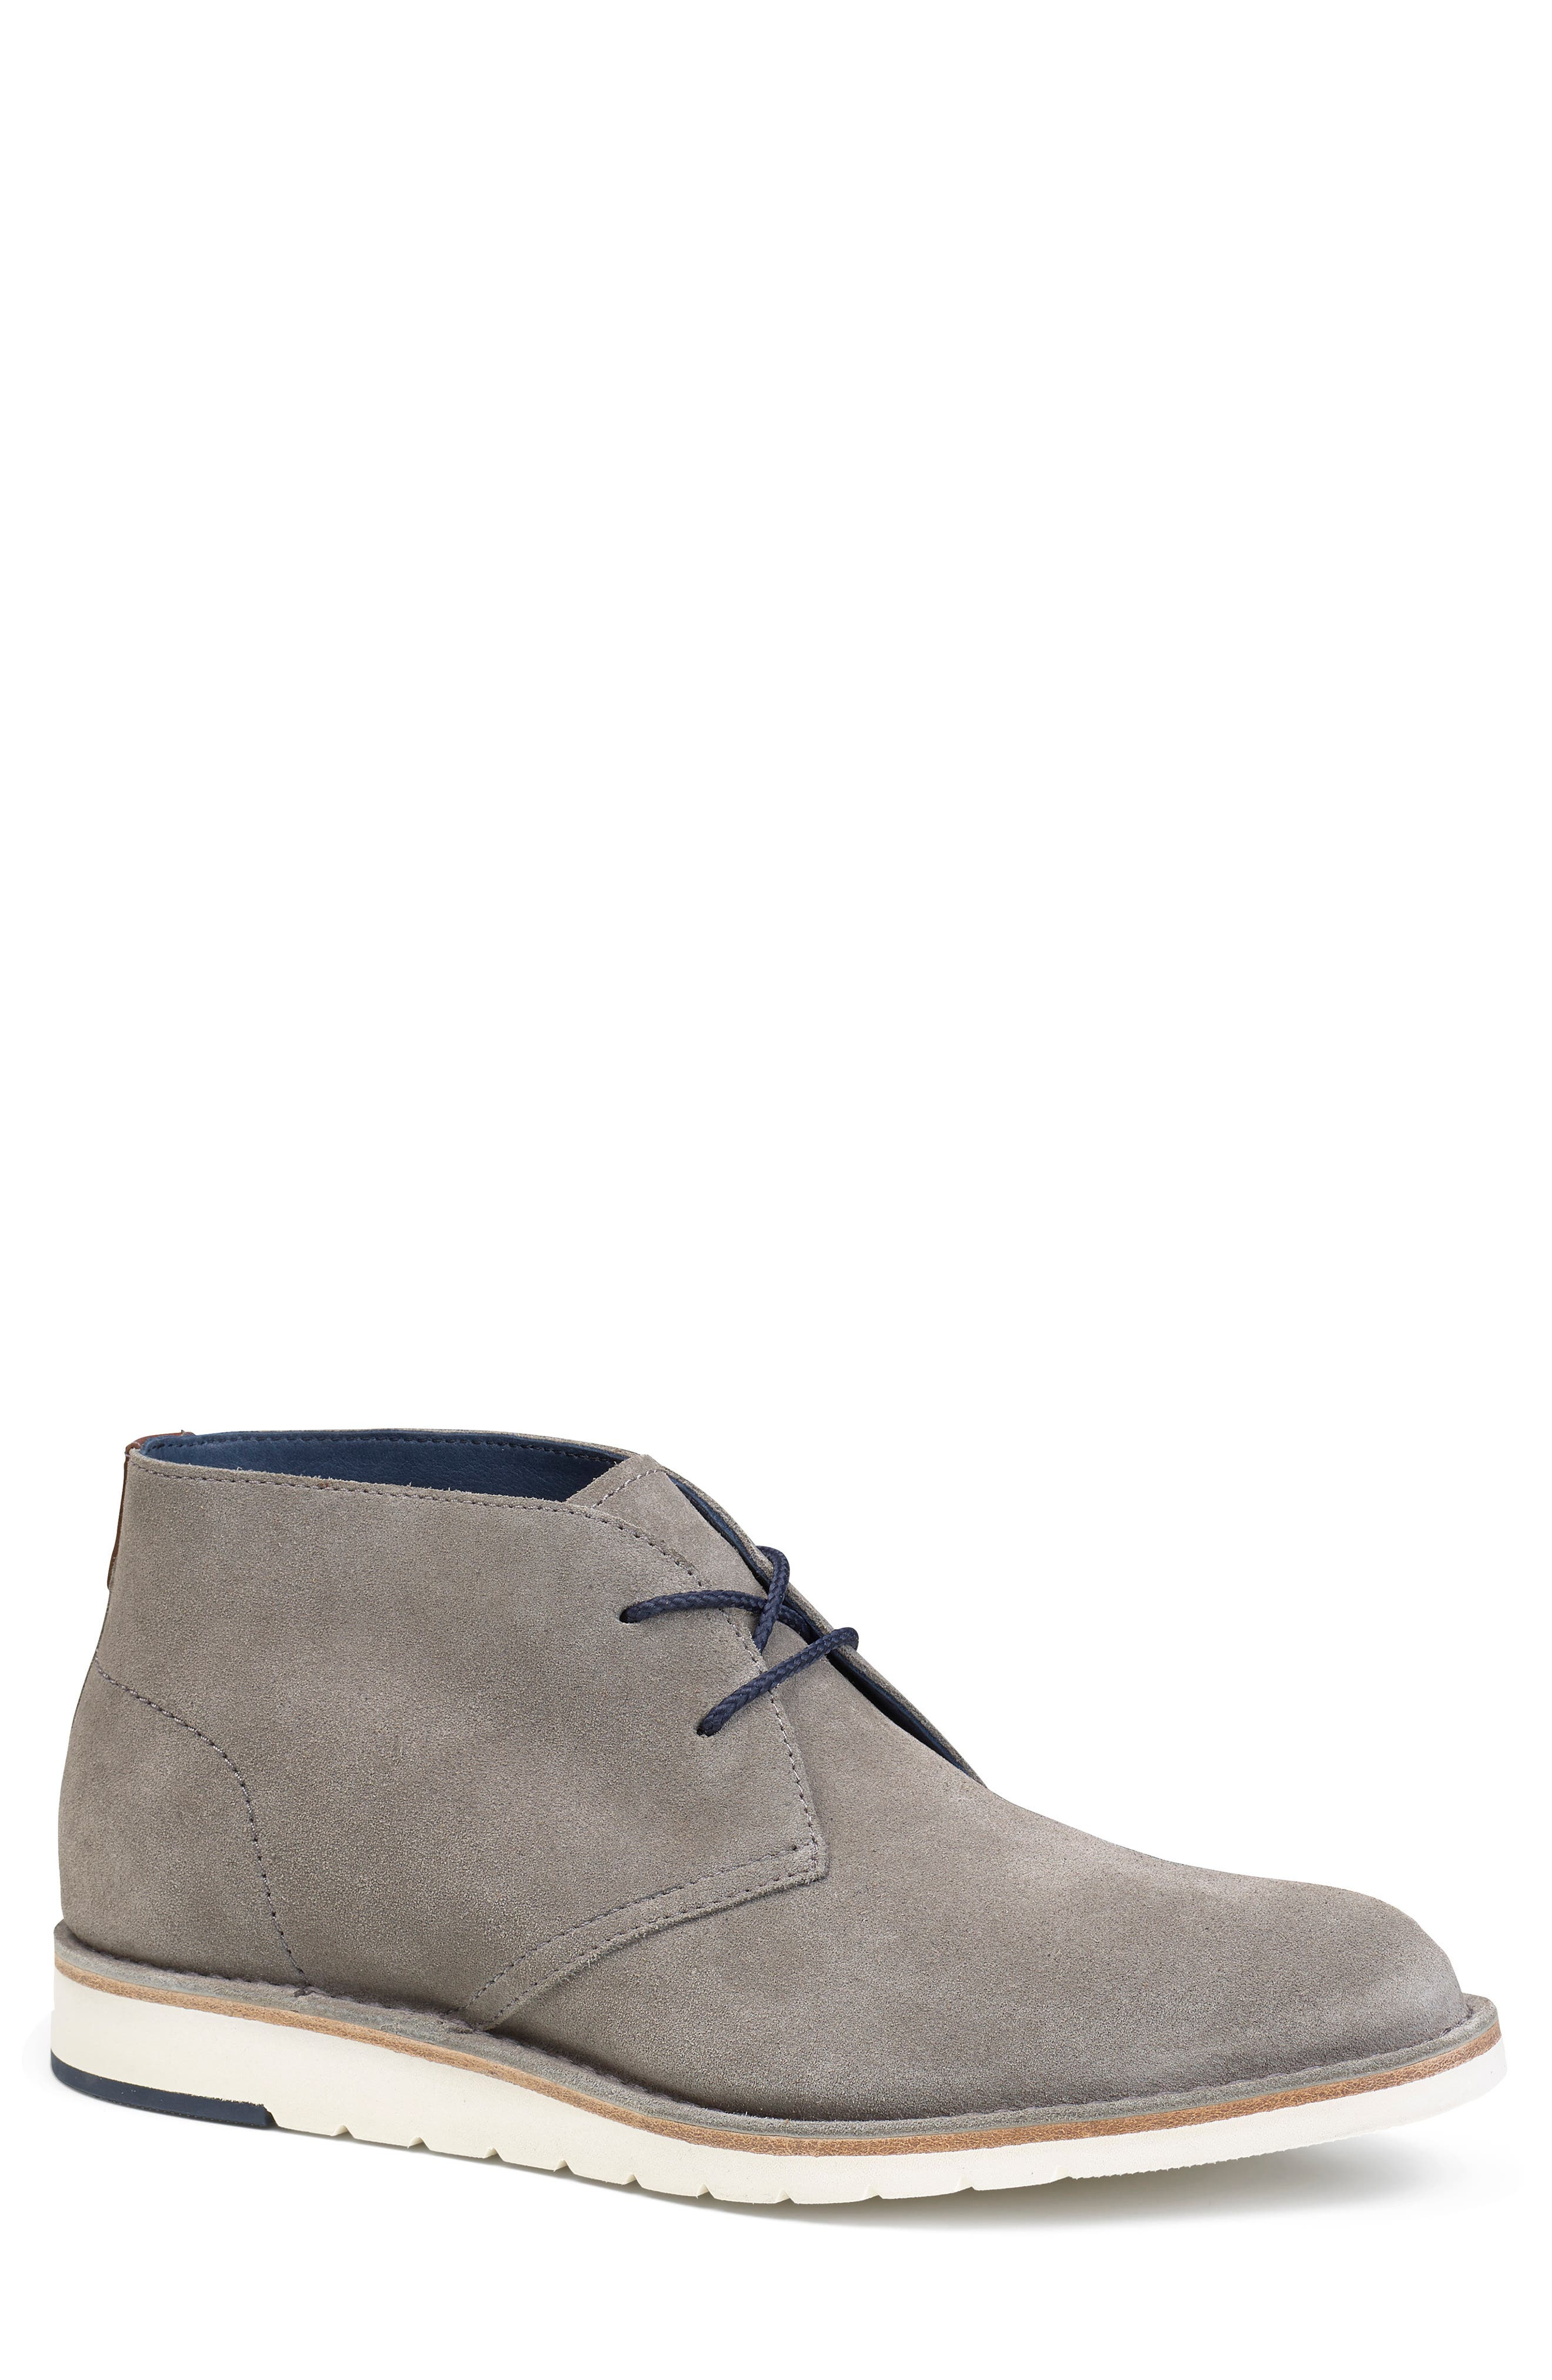 A clean, classic silhouette offers versatile appeal in this casually charming chukka boot built with OrthoLite cushioned arch support. Style Name: Trask Bardon Chukka Boot (Men). Style Number: 6037529. Available in stores.